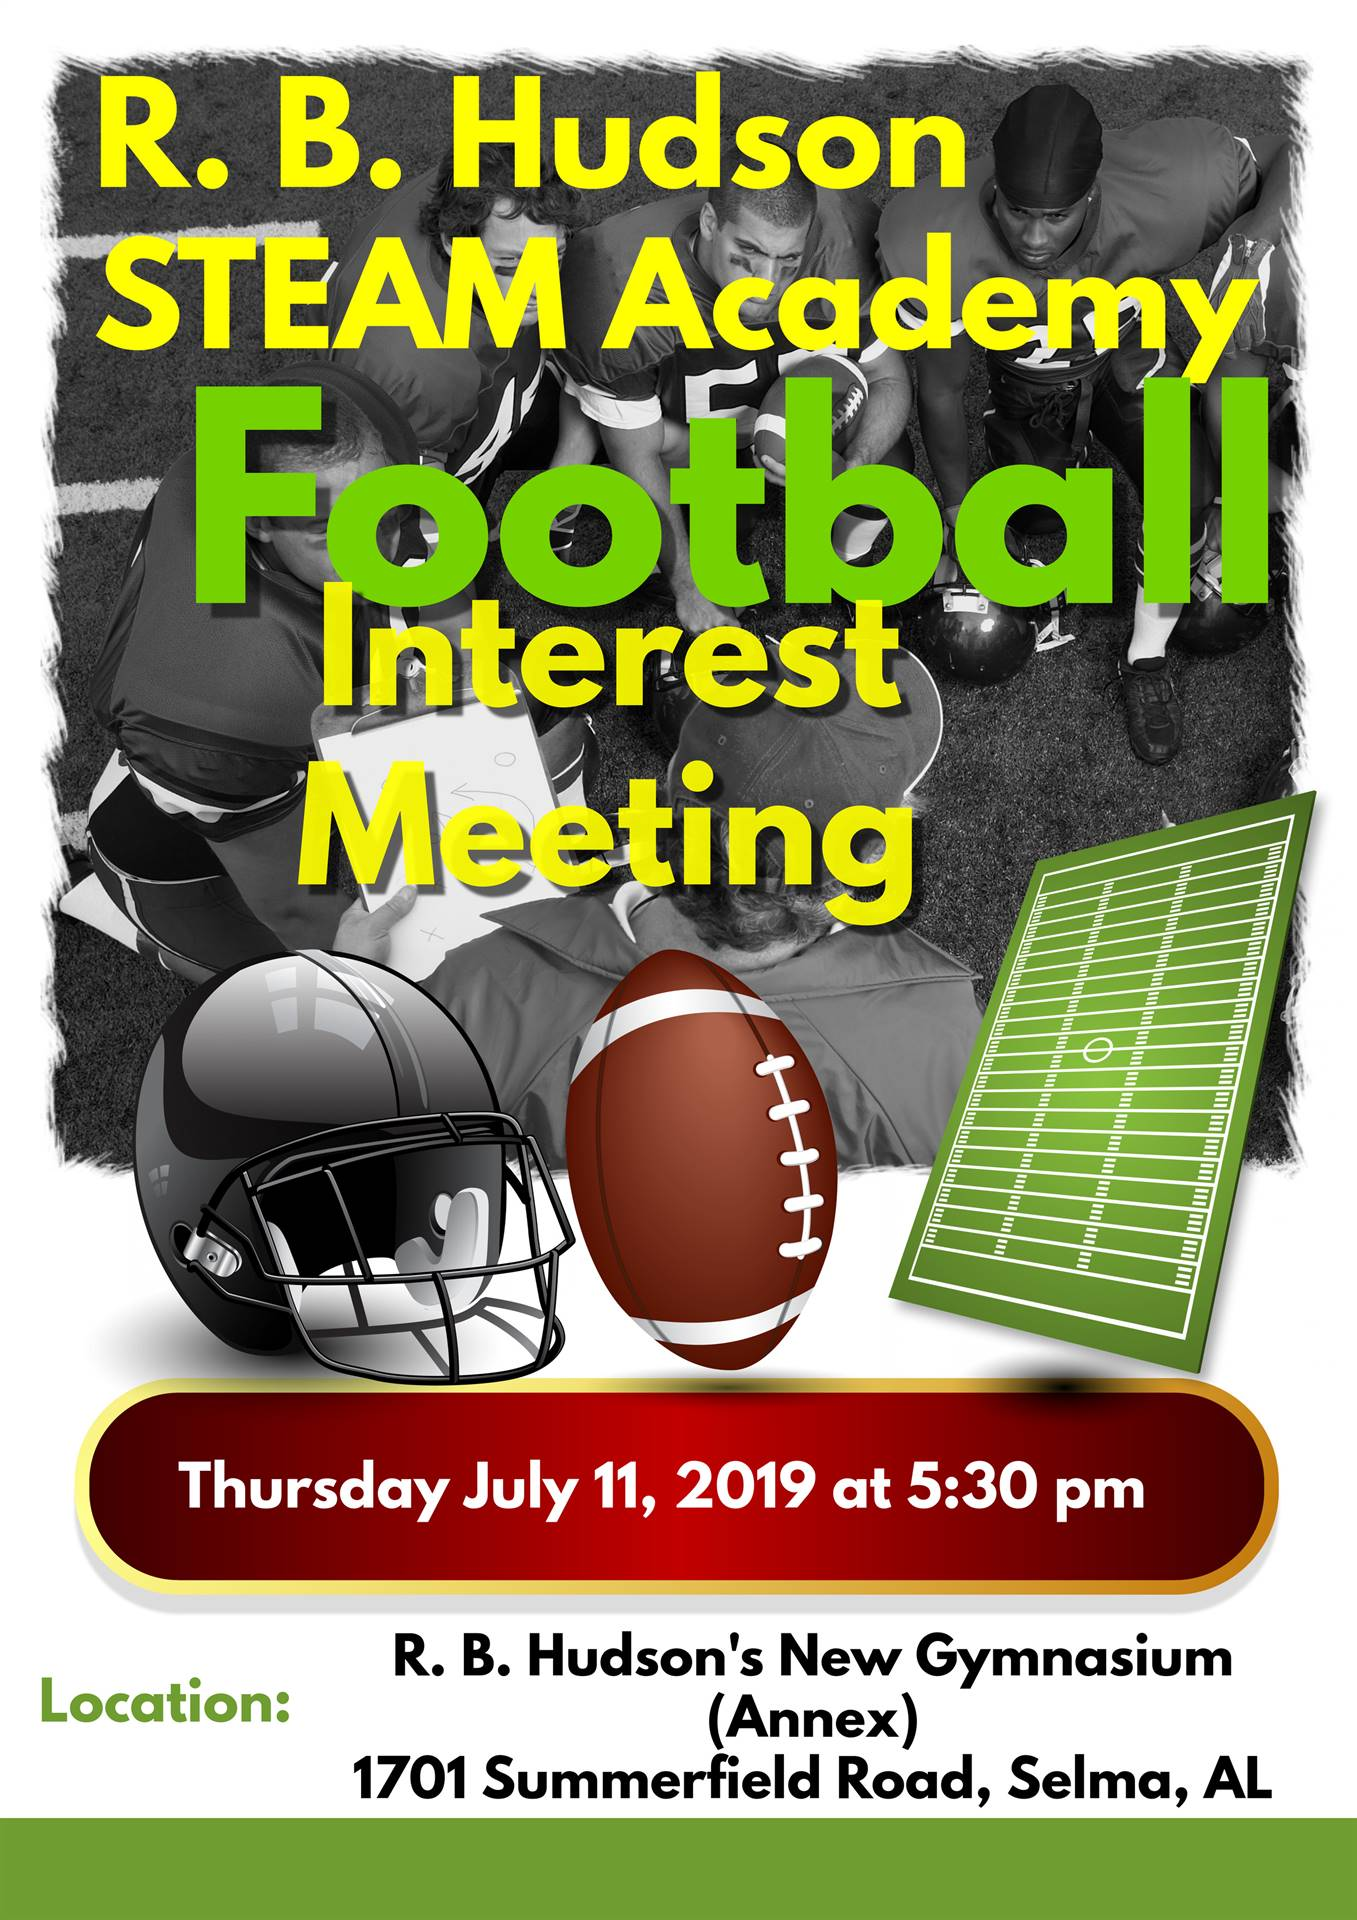 R. B. Hudson Football Interest Meeting